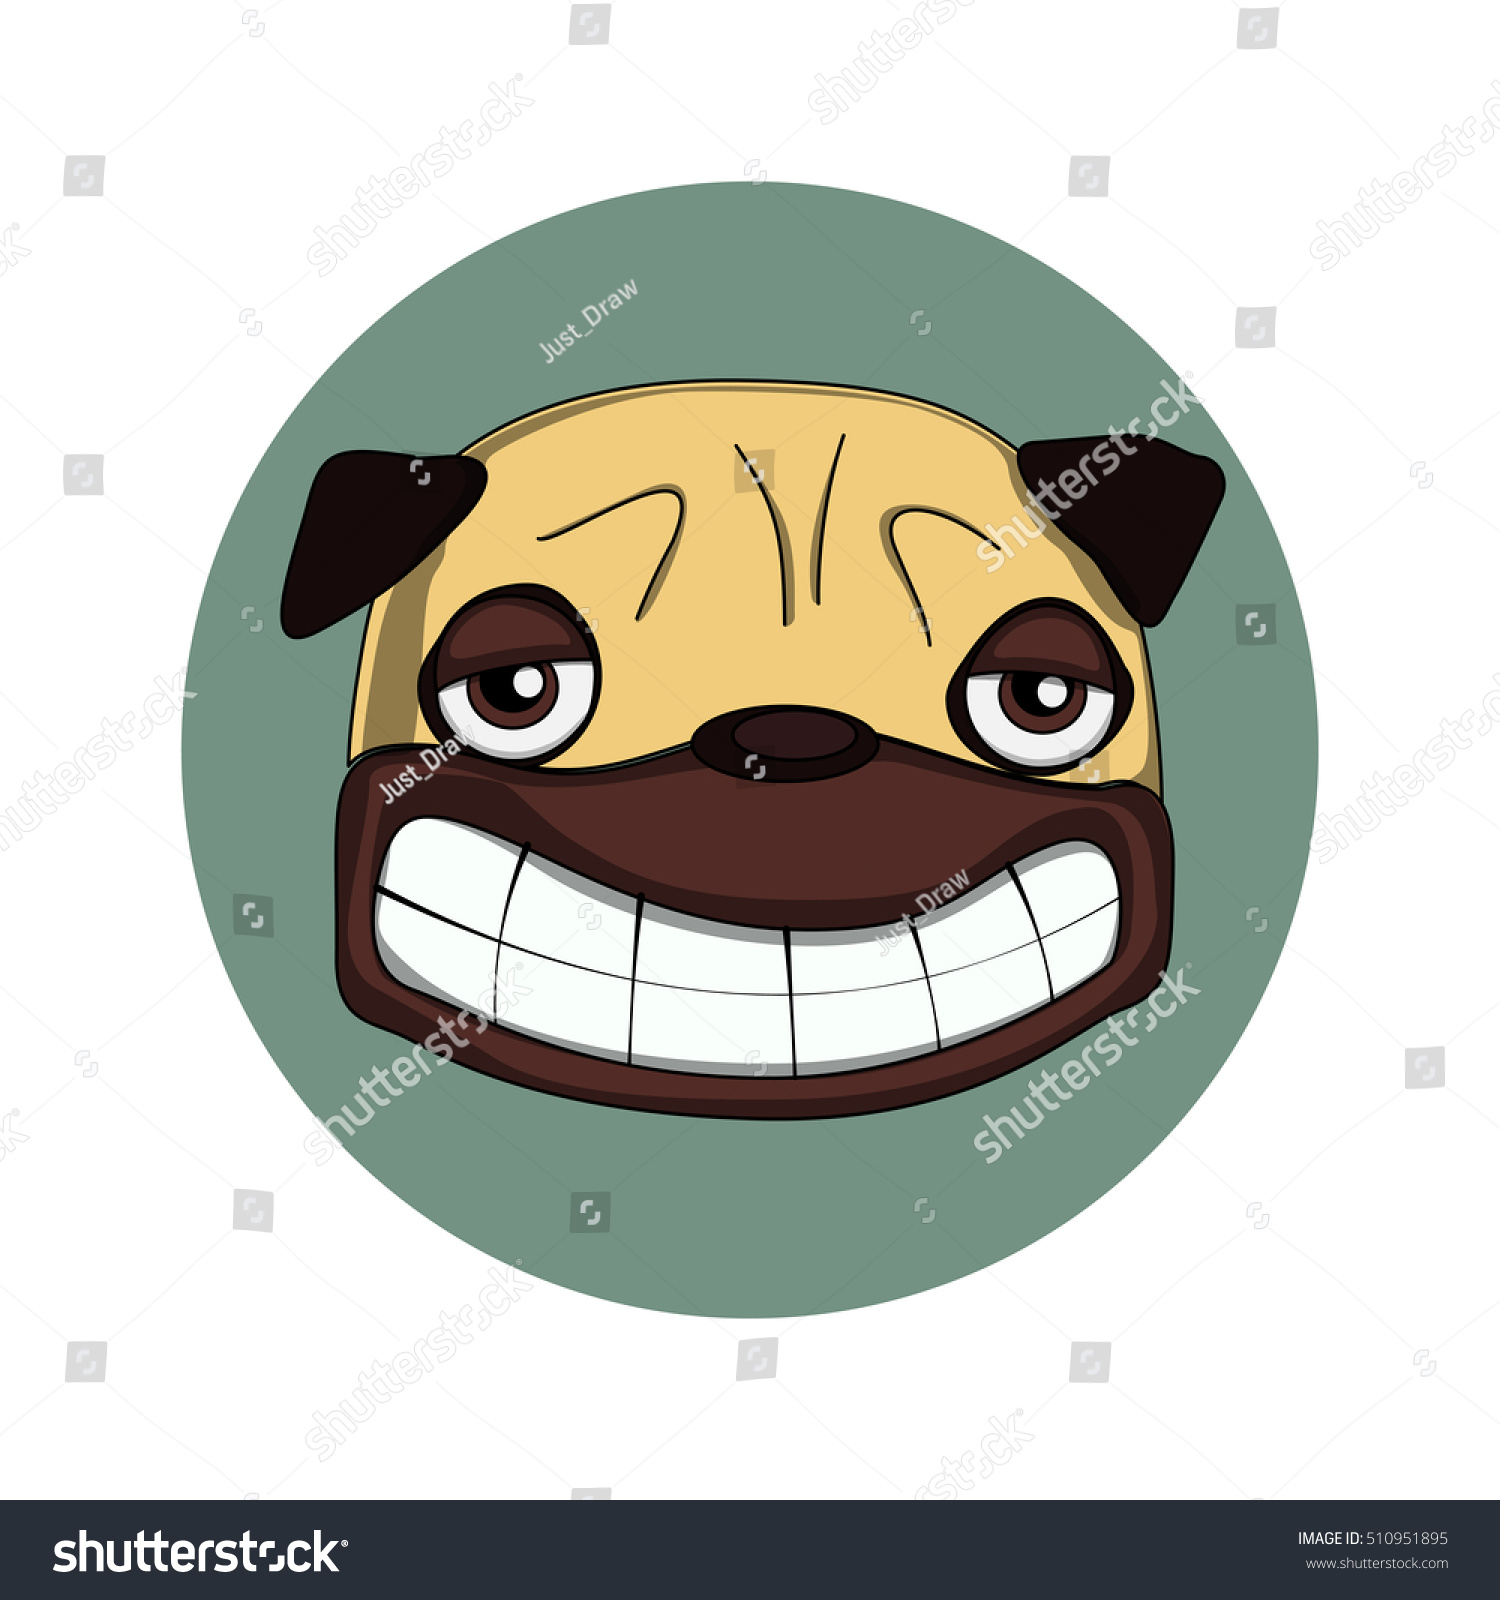 T shirt poster design - Cool Pug Character Design For T Shirt Poster Happy